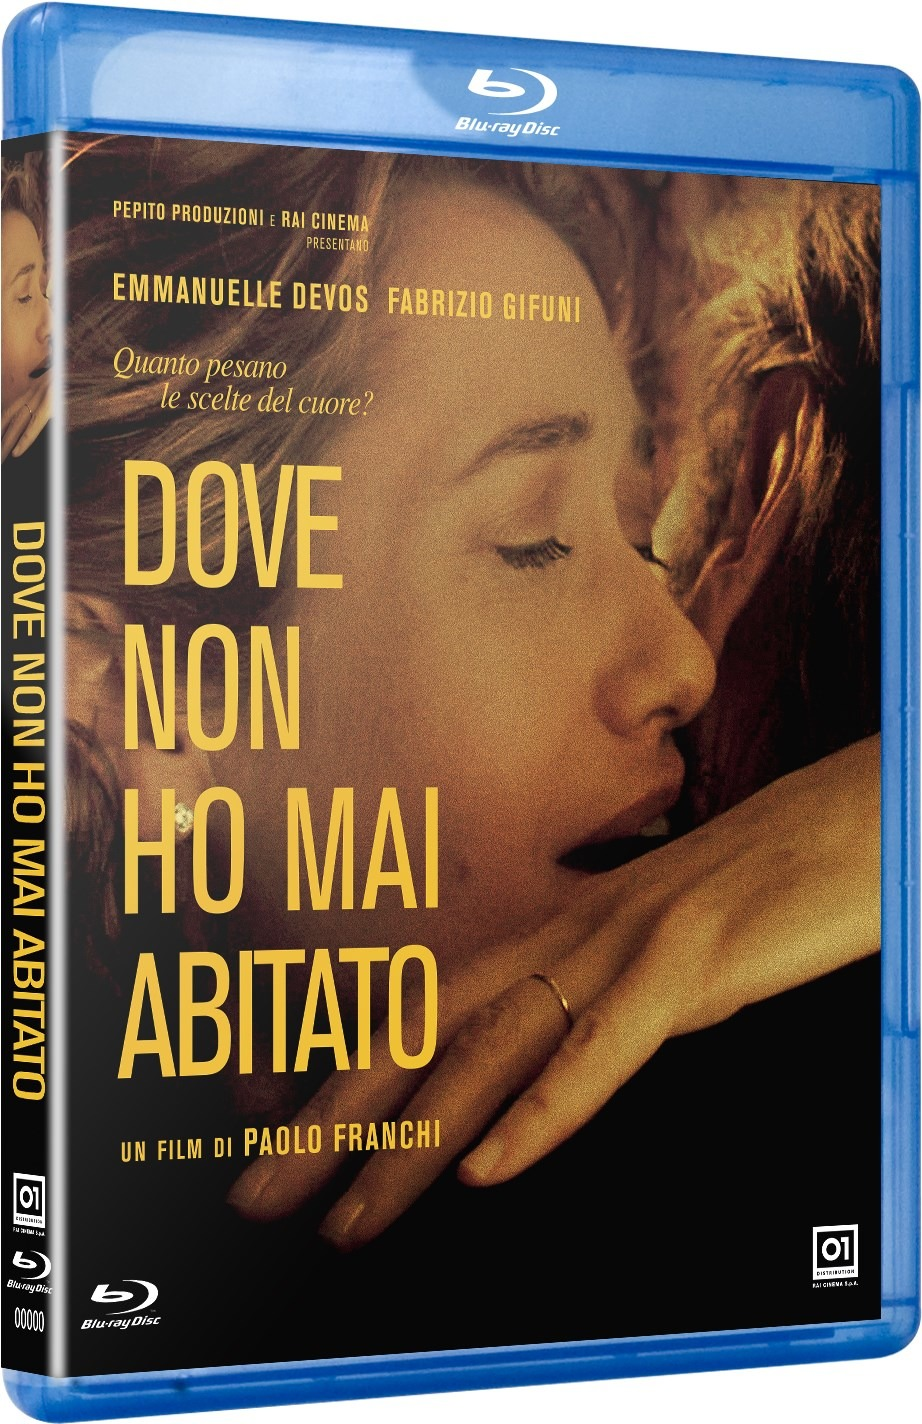 DOVE NON HO MAI ABITATO - BLU RAY